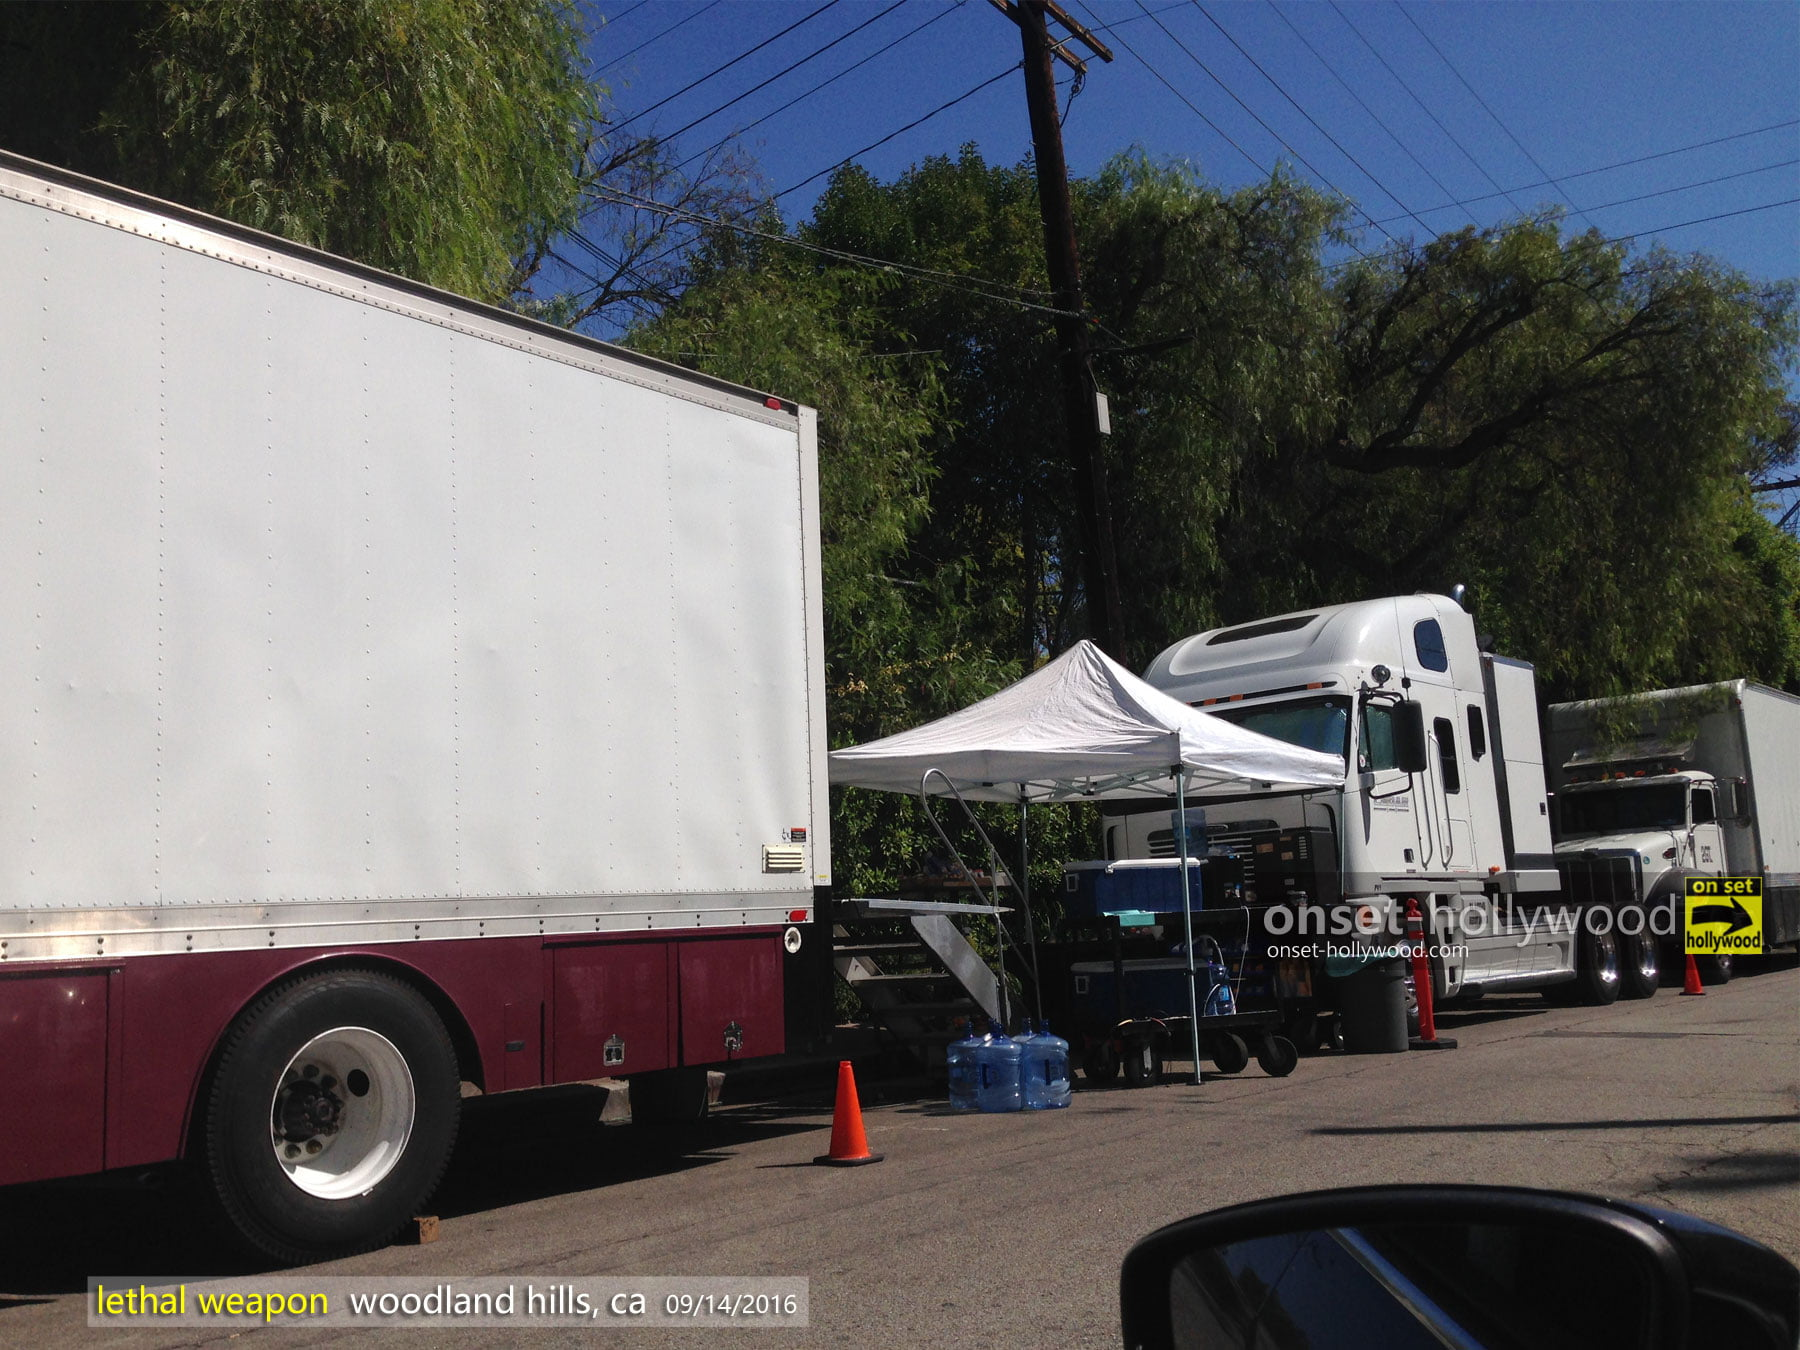 lethal-weapon-season-1-filming-locations-woodland-hills-pic5